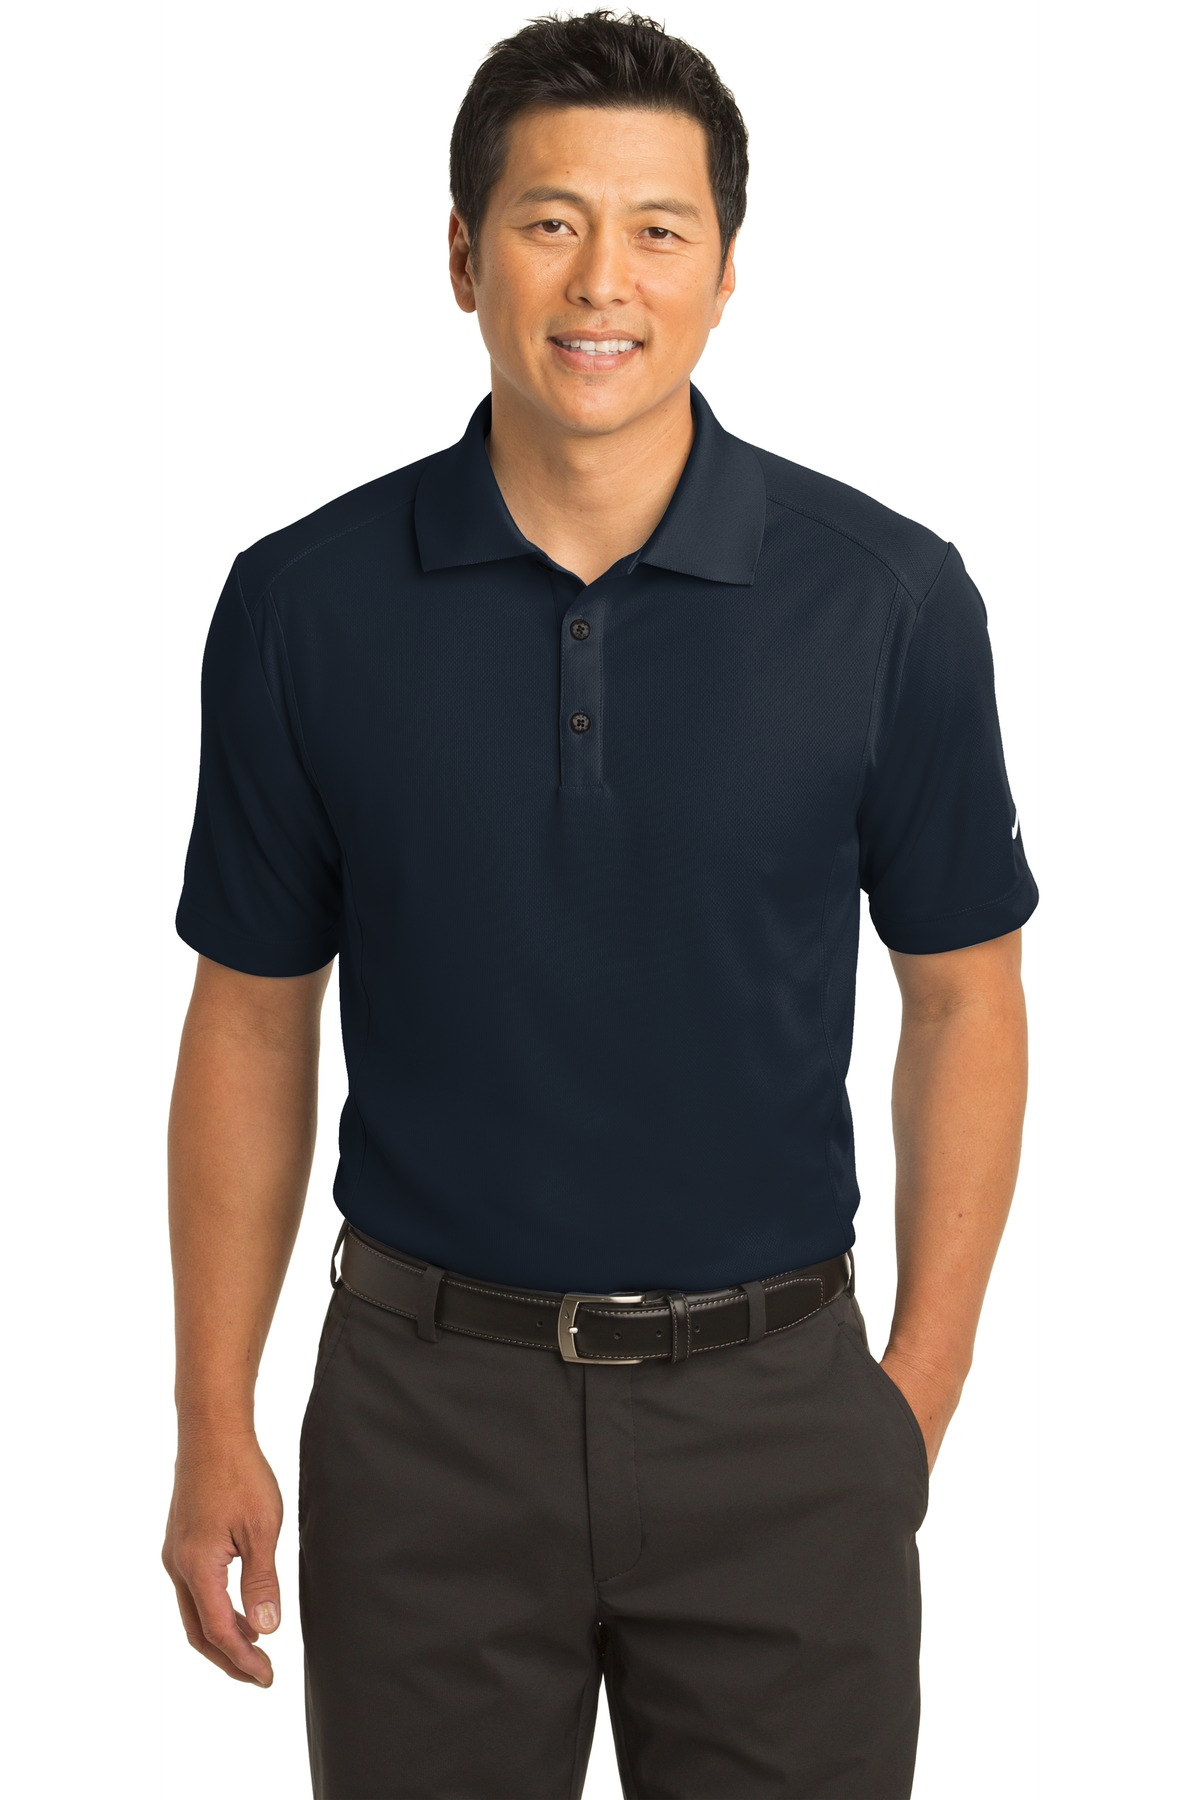 Nike Dri-FIT Classic Polo.  267020 - Midnight Navy